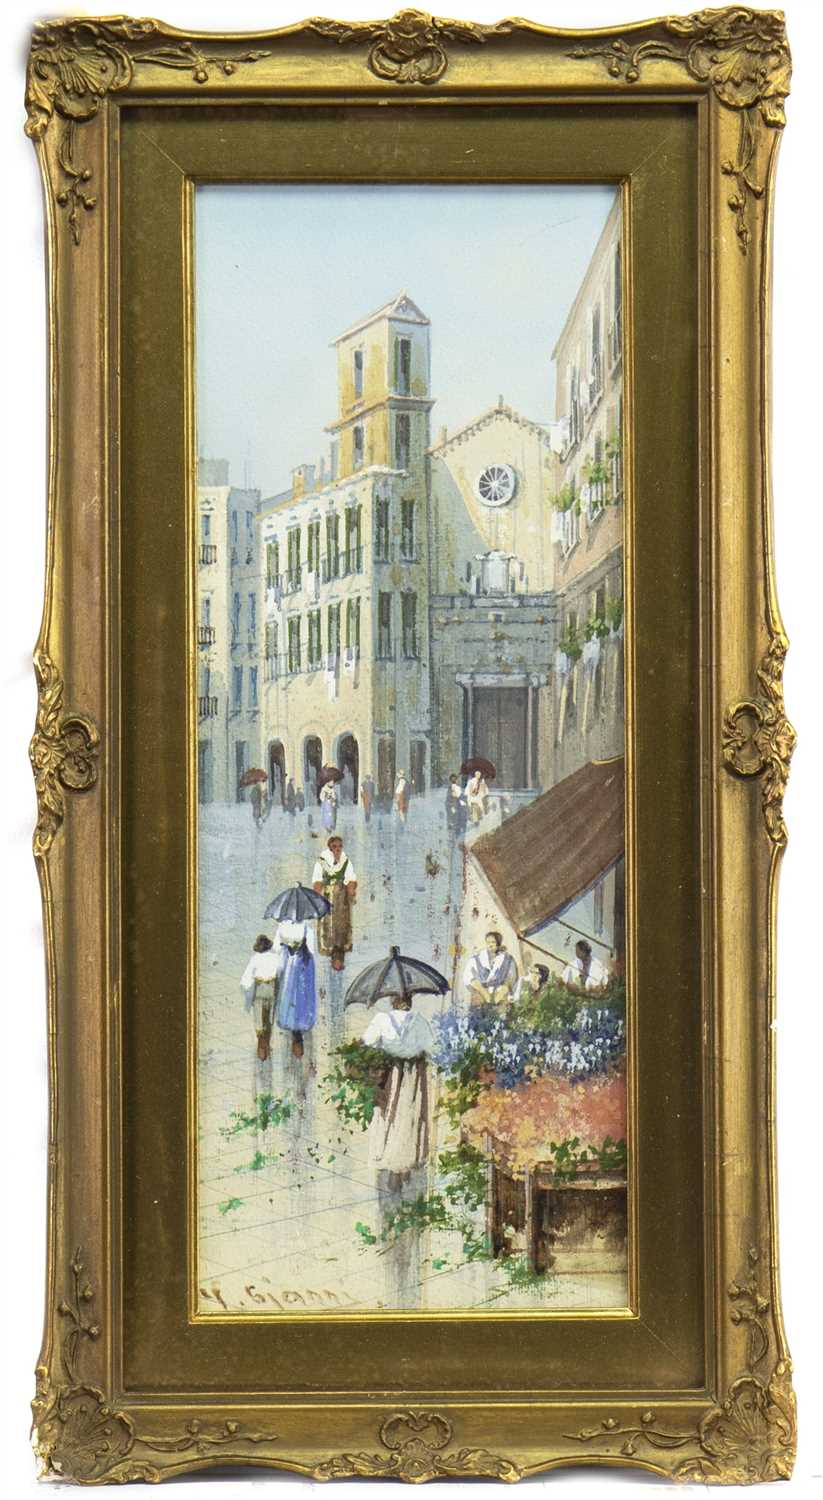 Lot 422-CONTINENTAL STREET SCENE, A WATERCOLOUR BY GIANNI